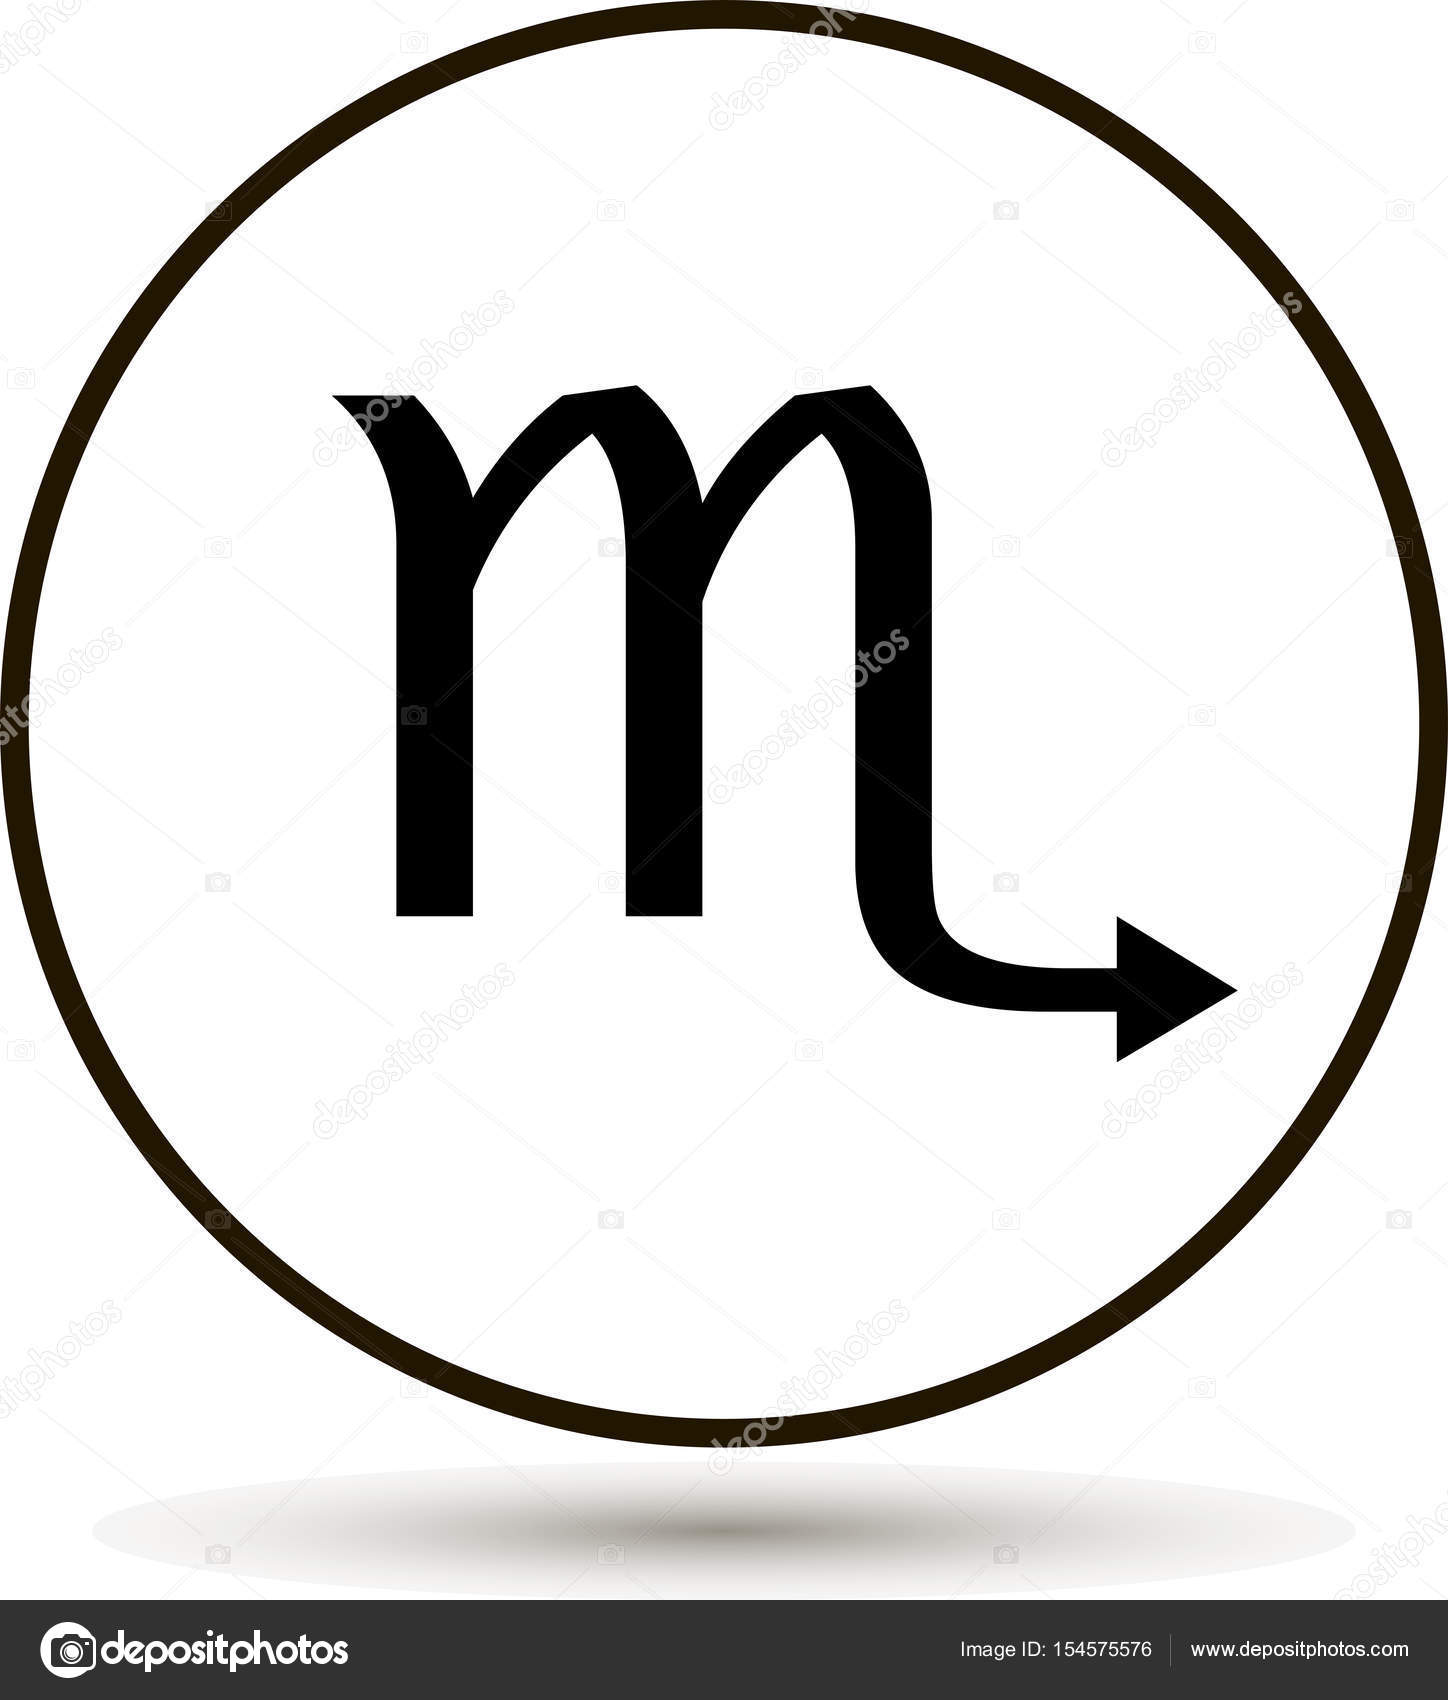 Scorpio zodiac sign astrological symbol icon in circle stock scorpio zodiac sign astrological symbol icon in circle stock vector buycottarizona Image collections